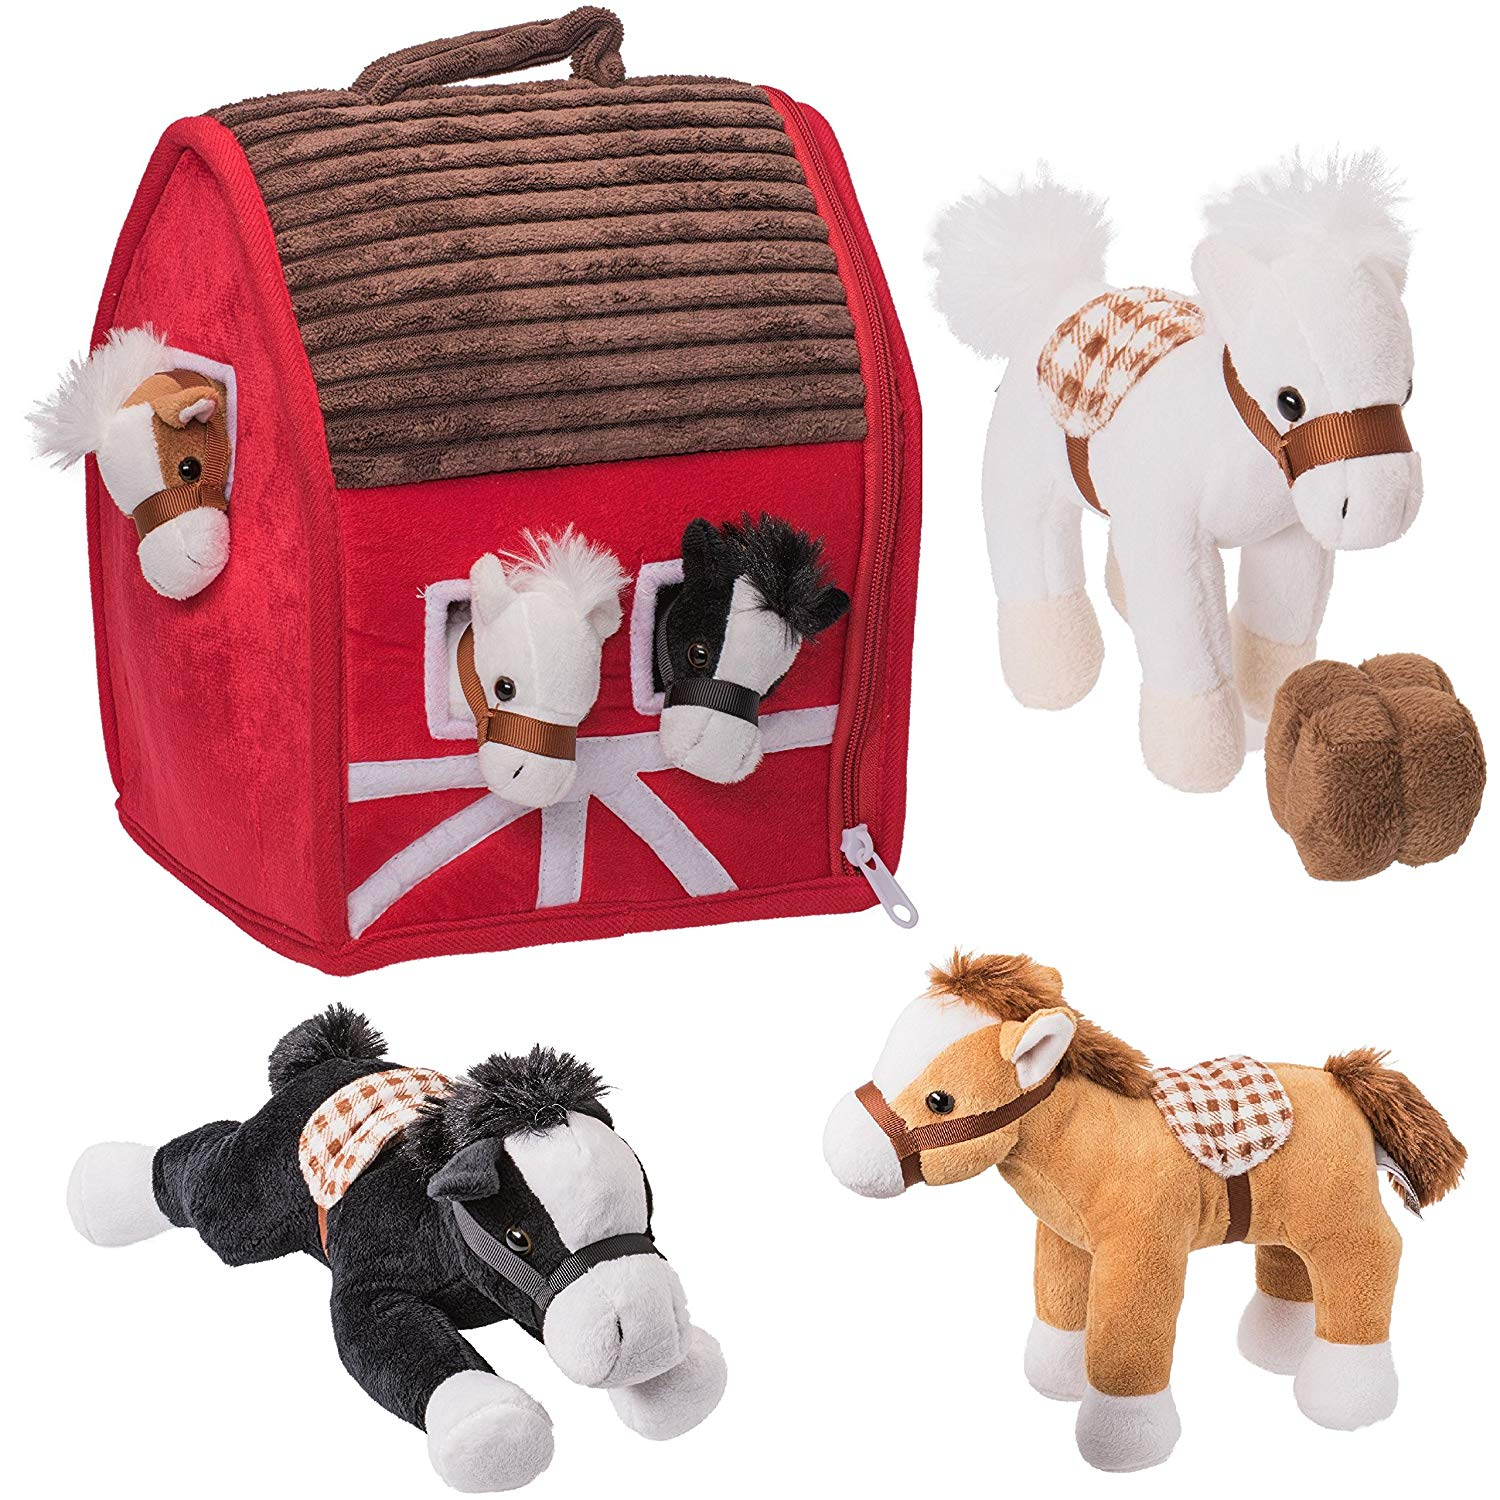 "Prextex Plush Farm House with Soft and Cuddly 5"" Plush Horses, Farm Boy, and Farm House Barn House Carry... by Prextex"